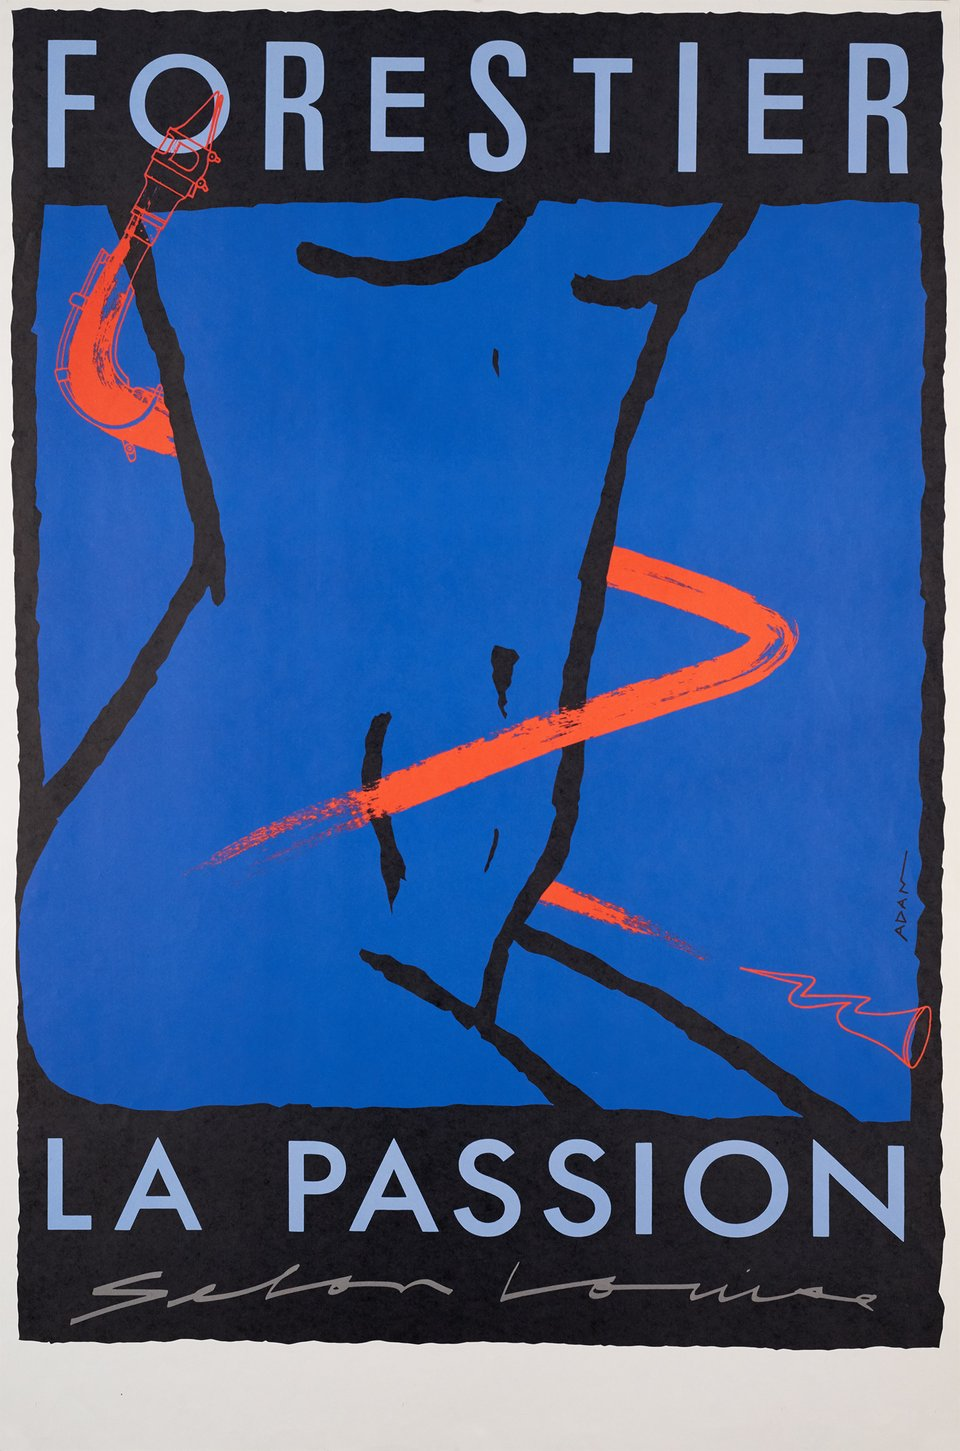 La passion selon Louise – Vintage poster – Adam – 1980